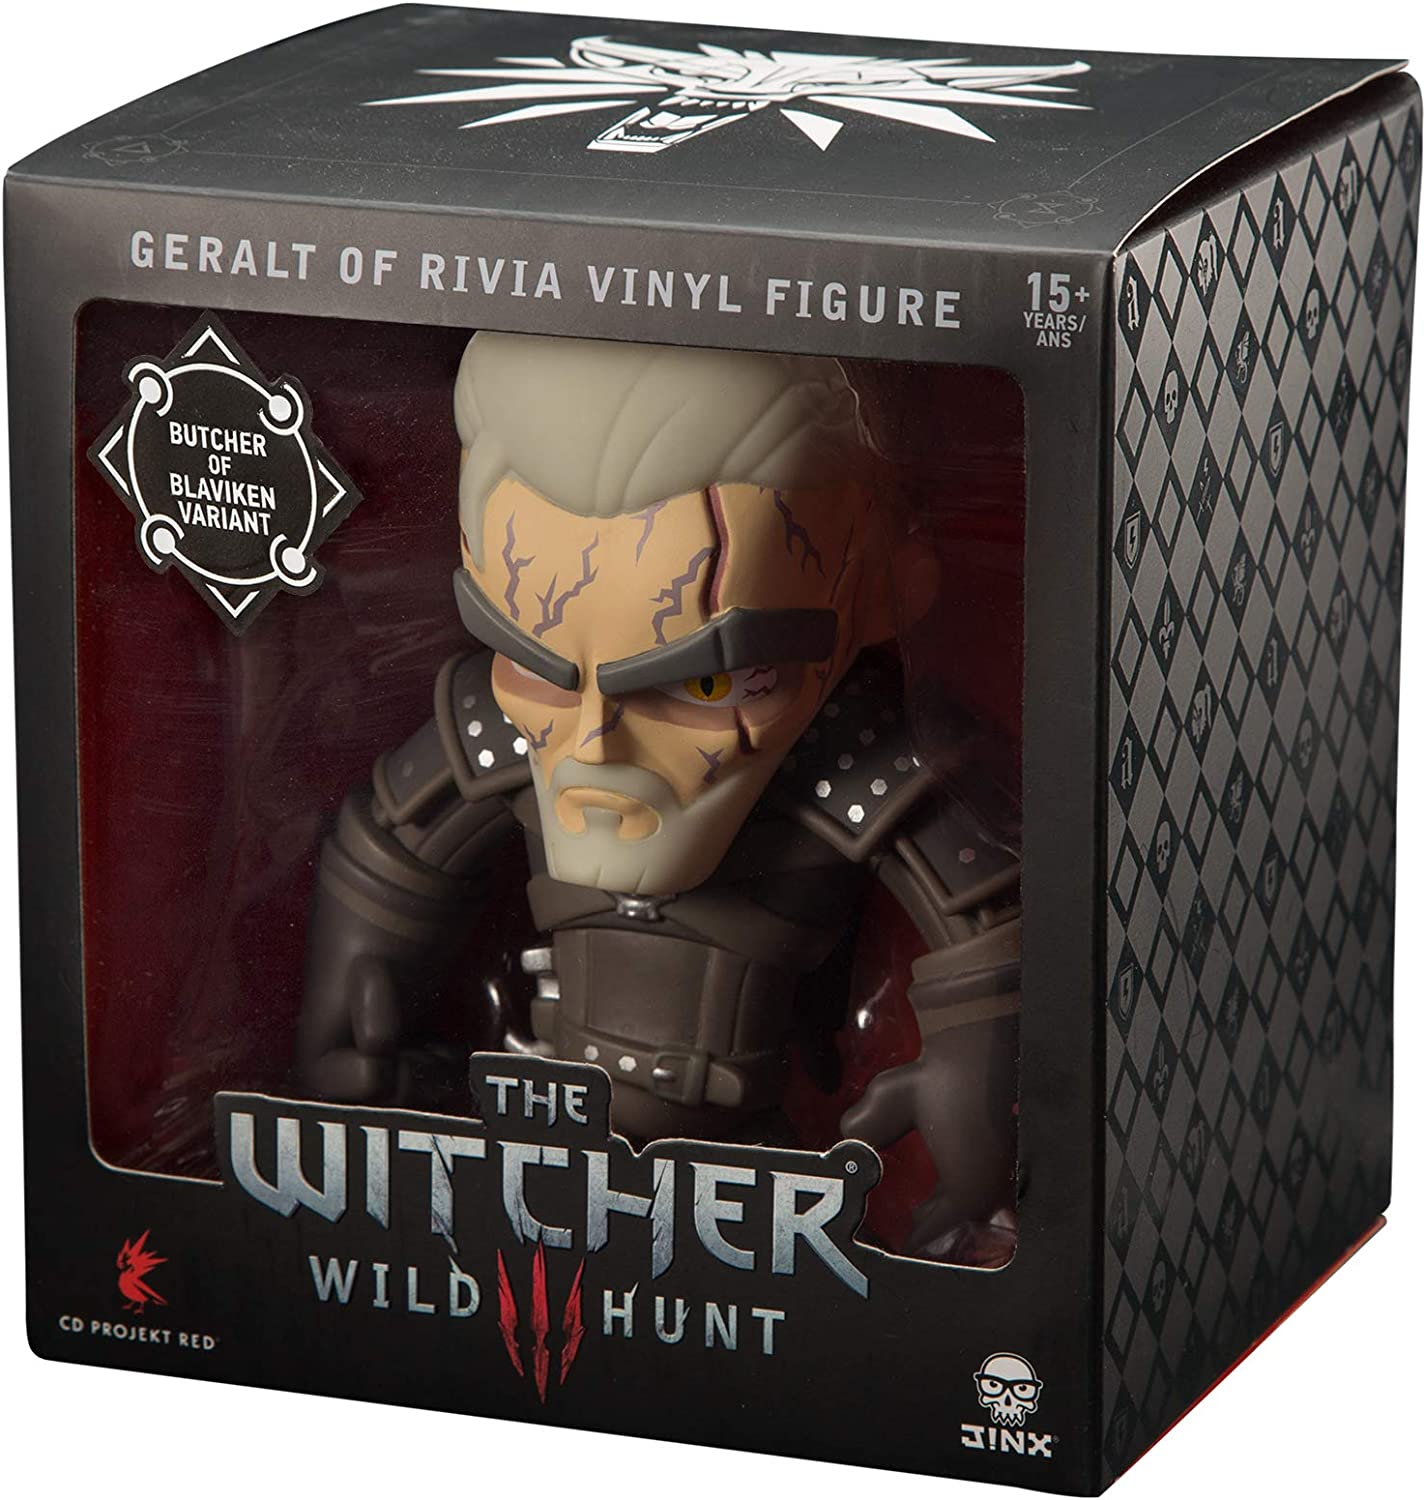 Amazon Com Jinx The Witcher 3 Butcher Of Blaviken Vinyl Action Figure 6 Tall Toys Games The butcher of blaviken.this story takes places many years before the games. jinx the witcher 3 butcher of blaviken vinyl action figure 6 tall